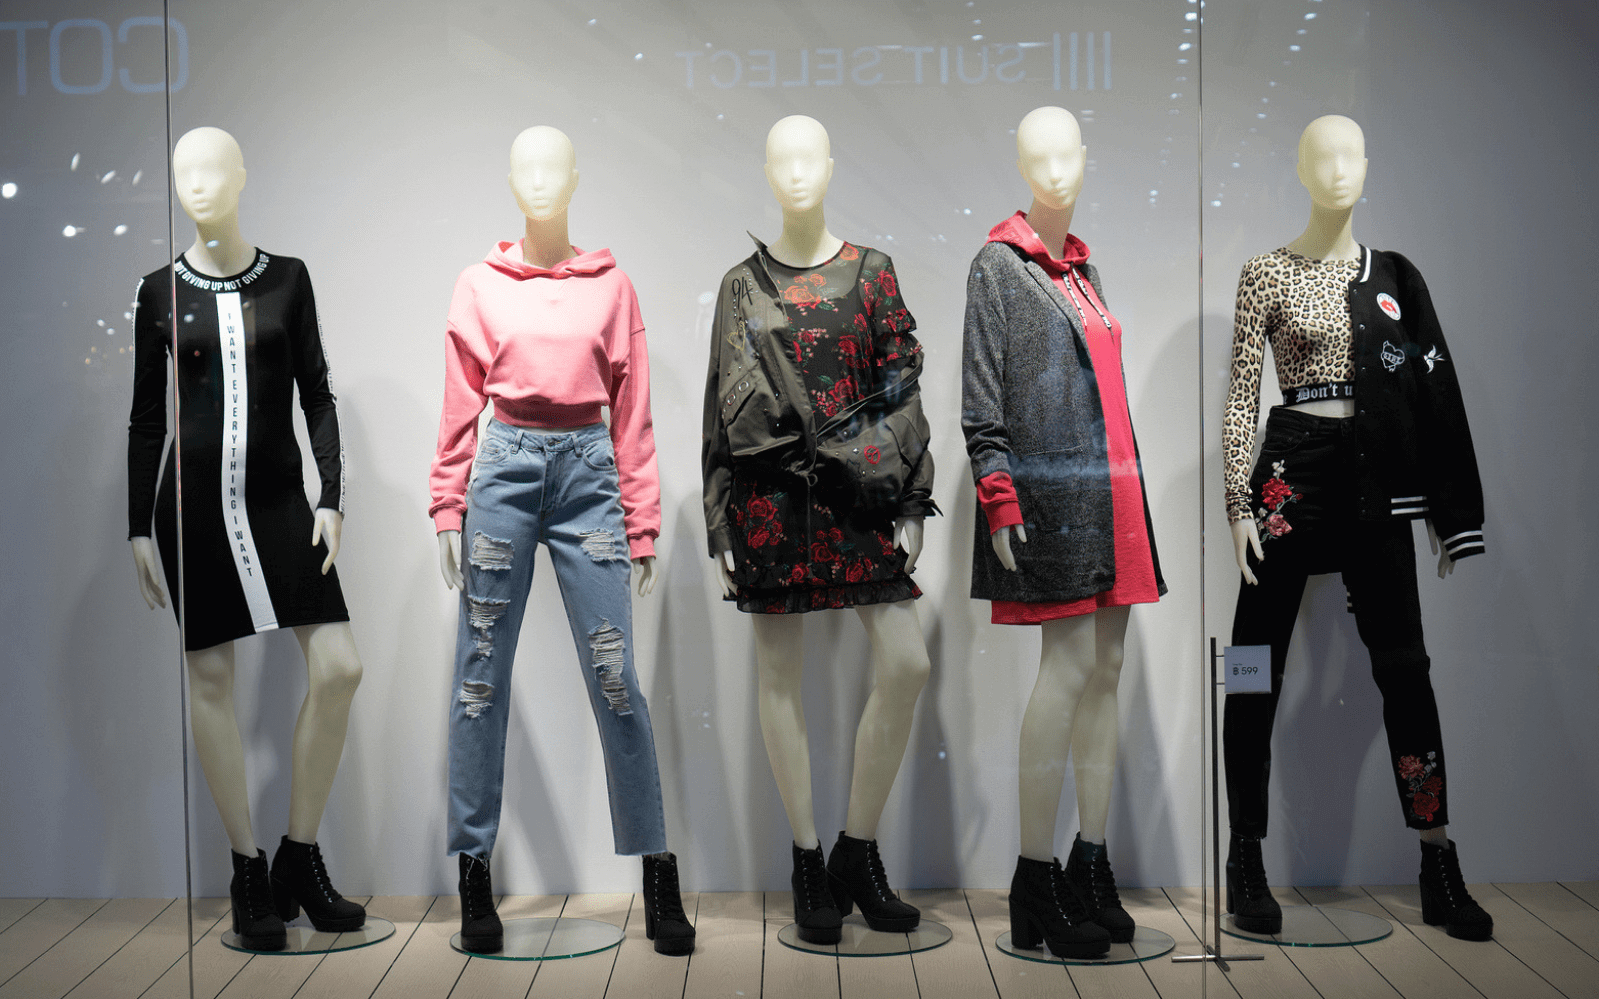 Shop window of clothing store